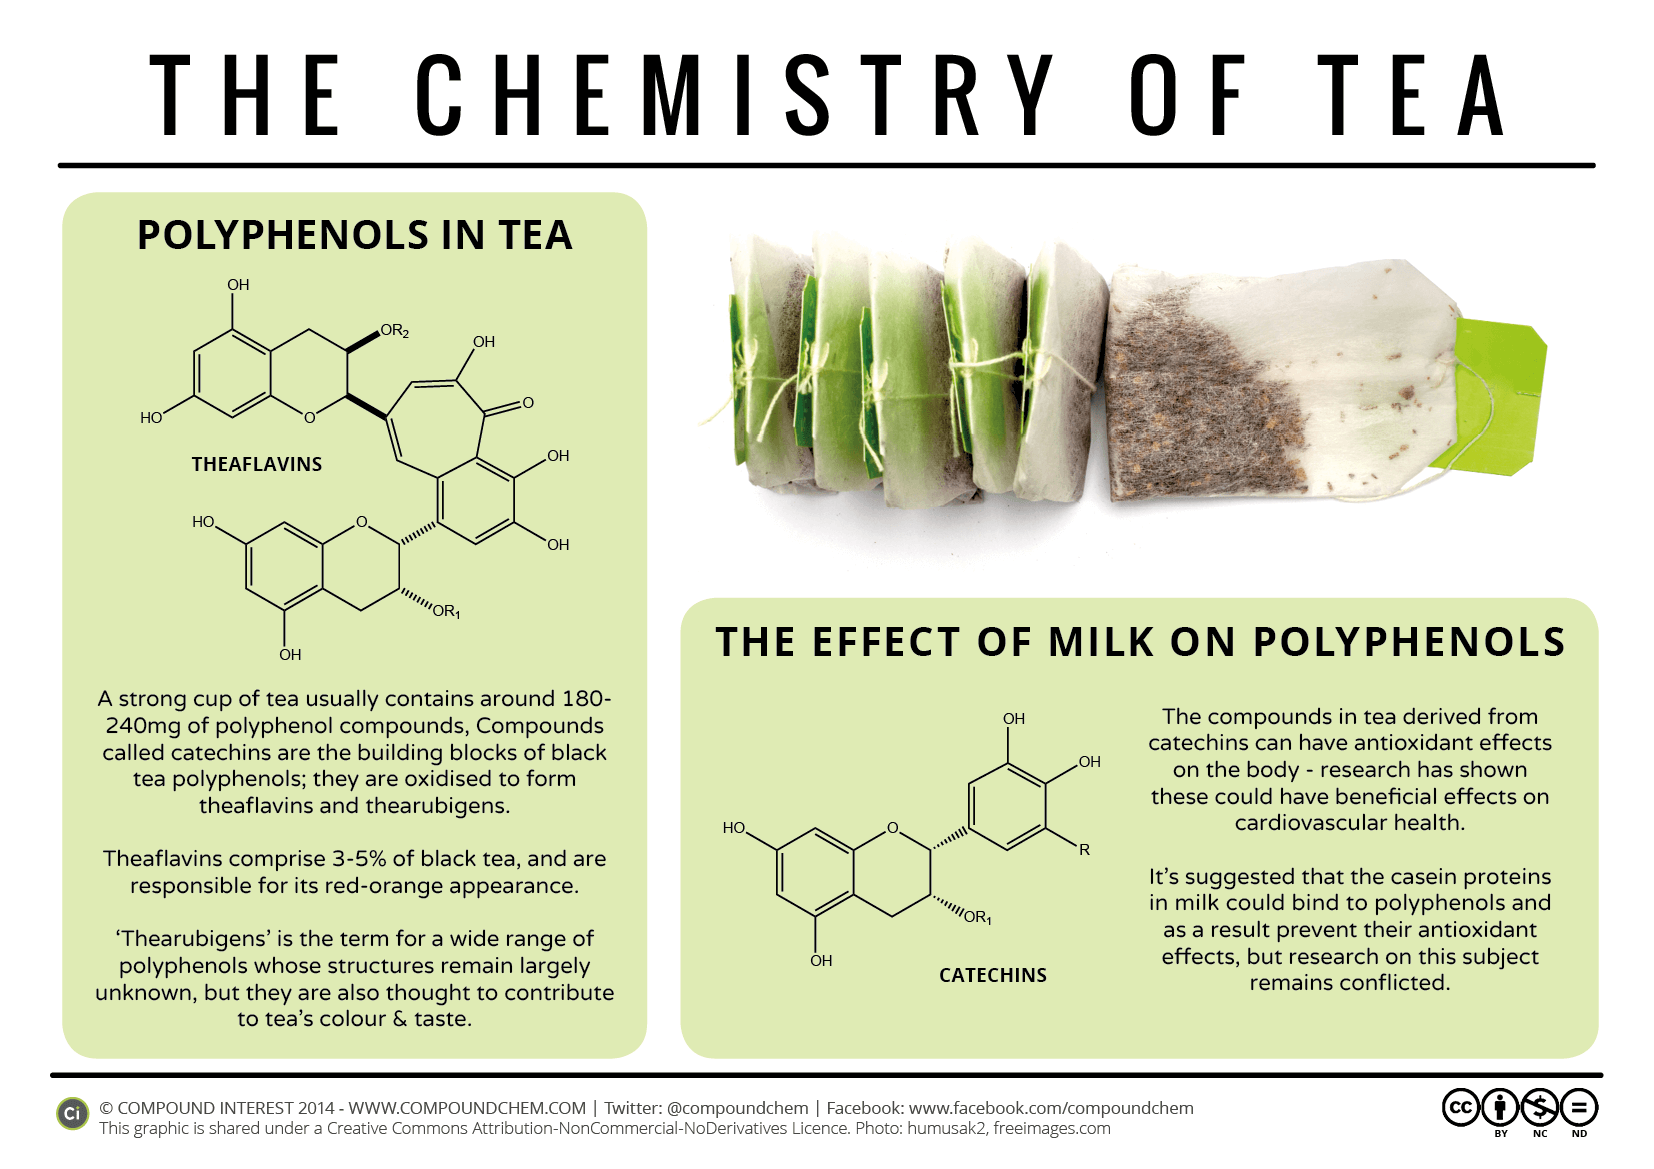 Polyphenols Amp Antioxidants The Chemistry Of Tea